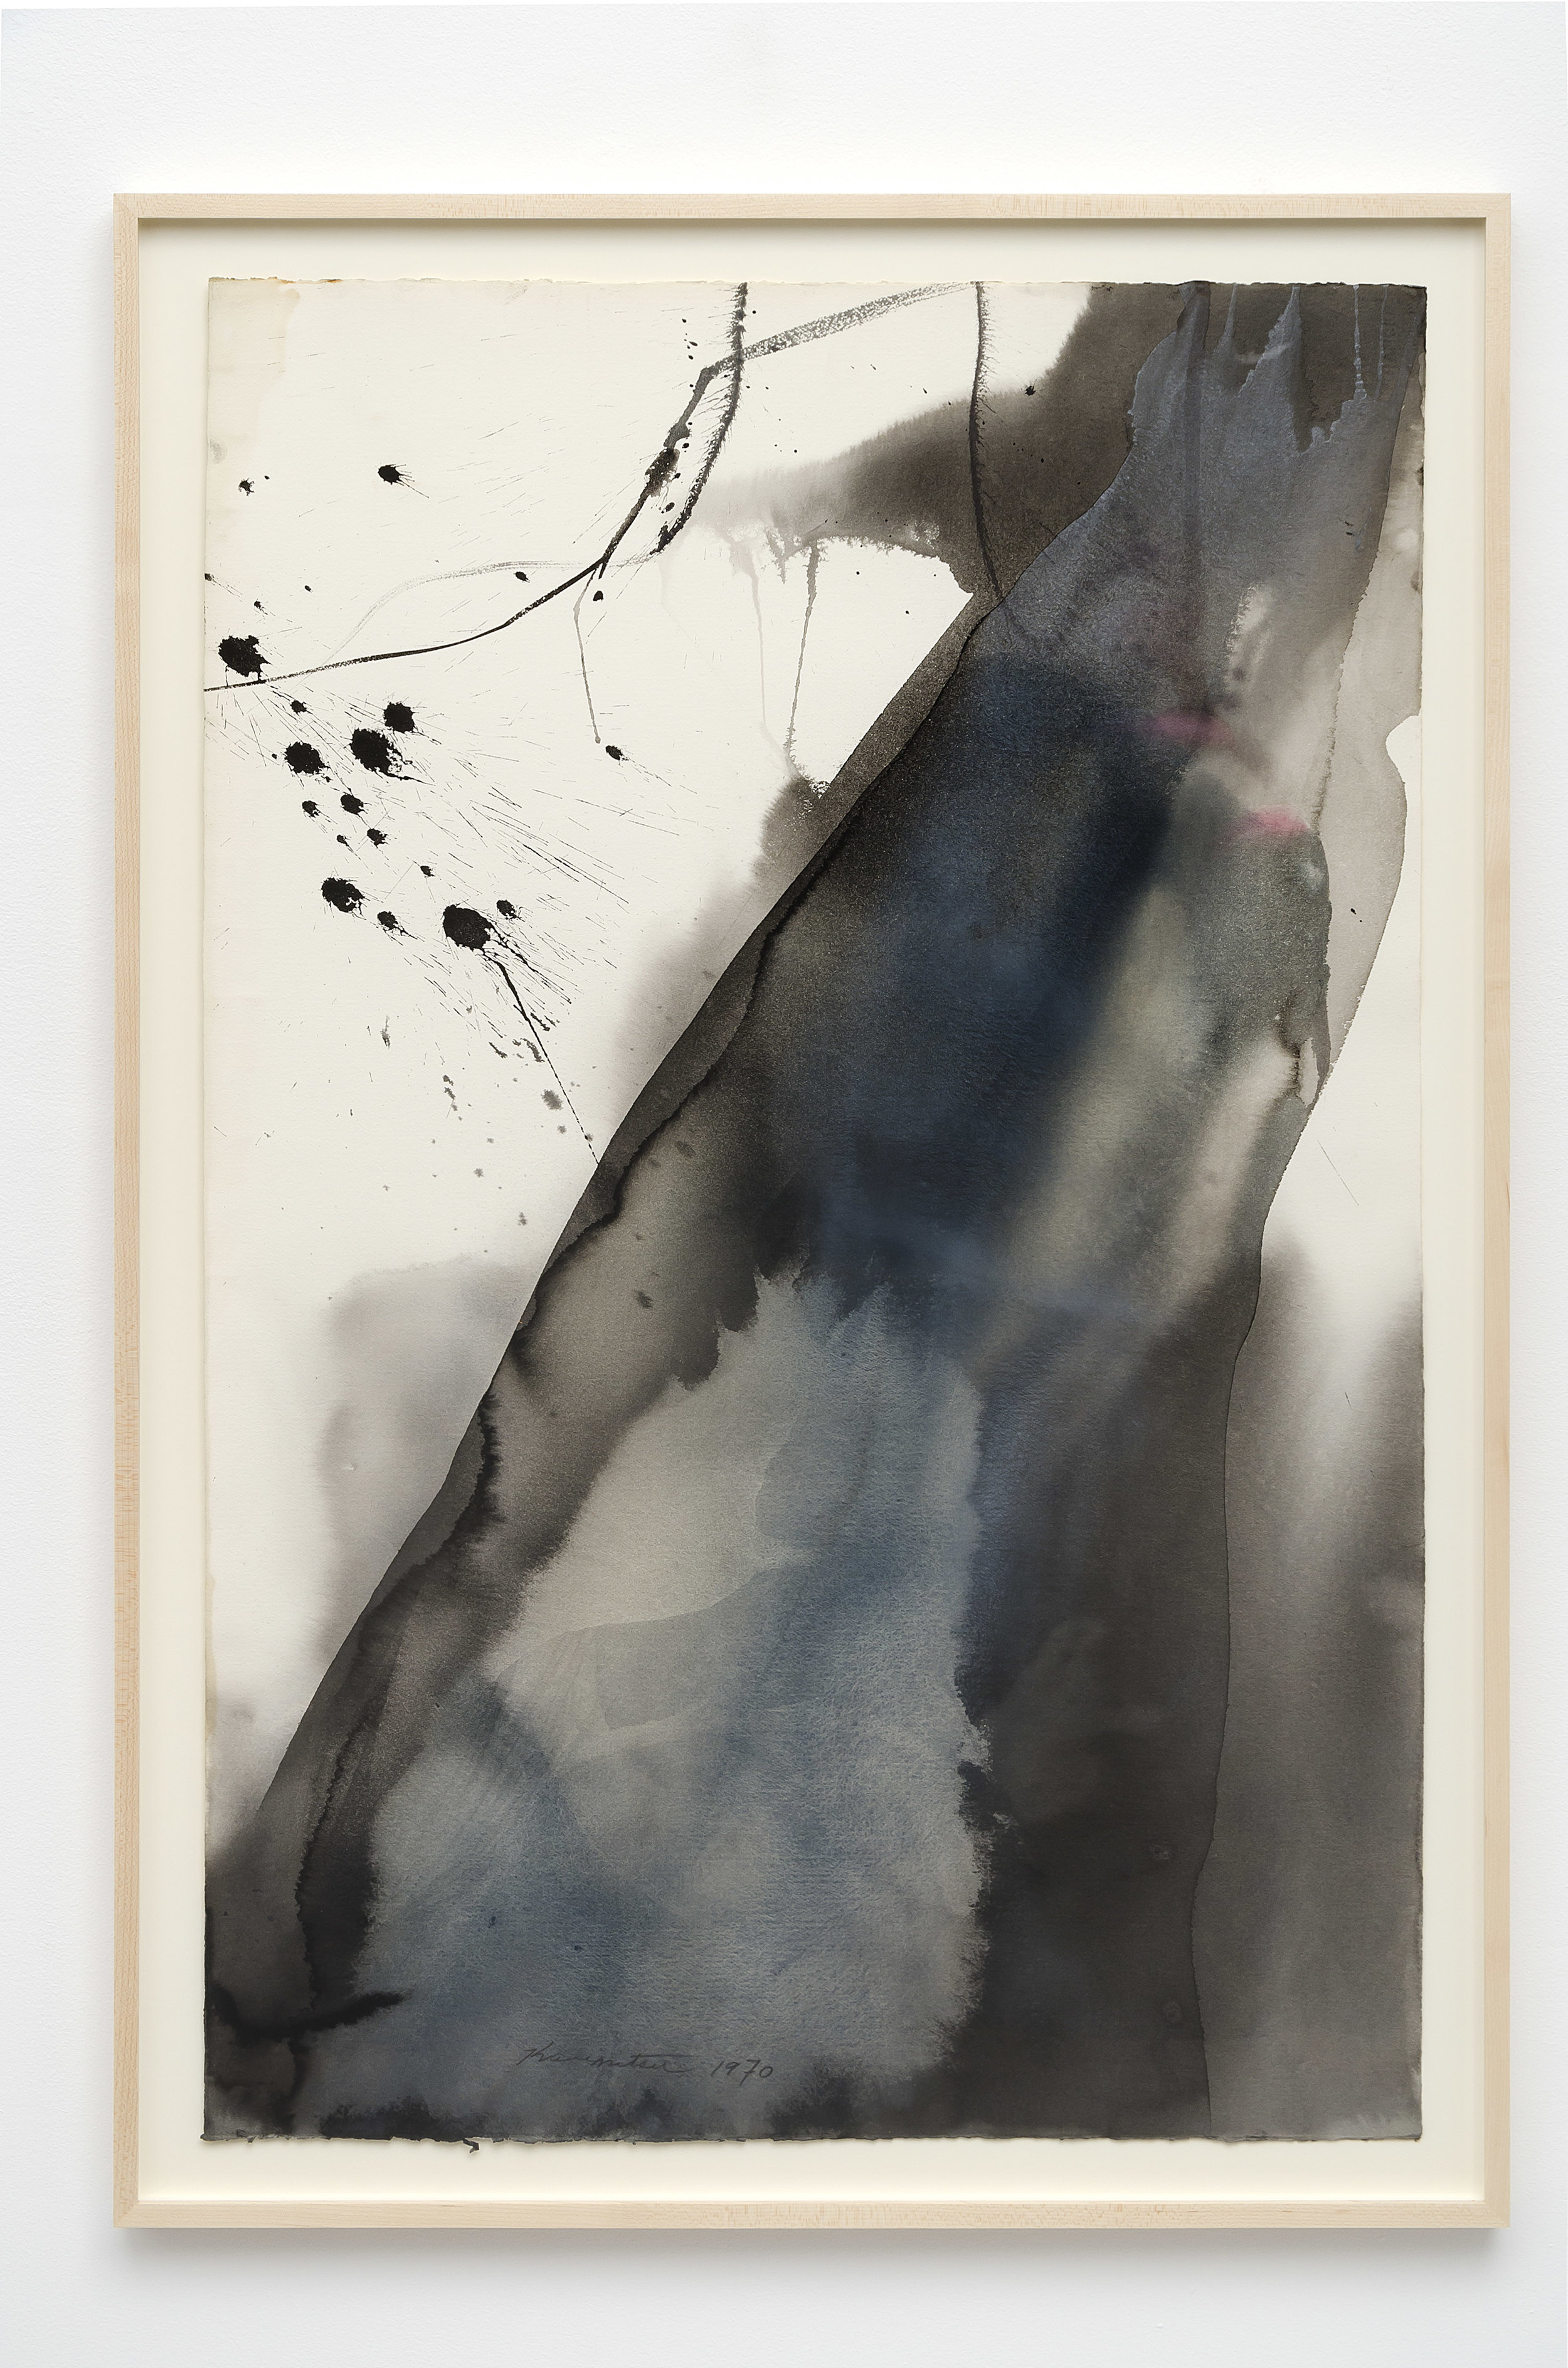 Matsumi Kanemitsu (1922-1992)   Untitled , 1970 sumi and watercolor on paper 43 3/4 x 29 1/4 inches; 111.1 x 74.3 centimeters